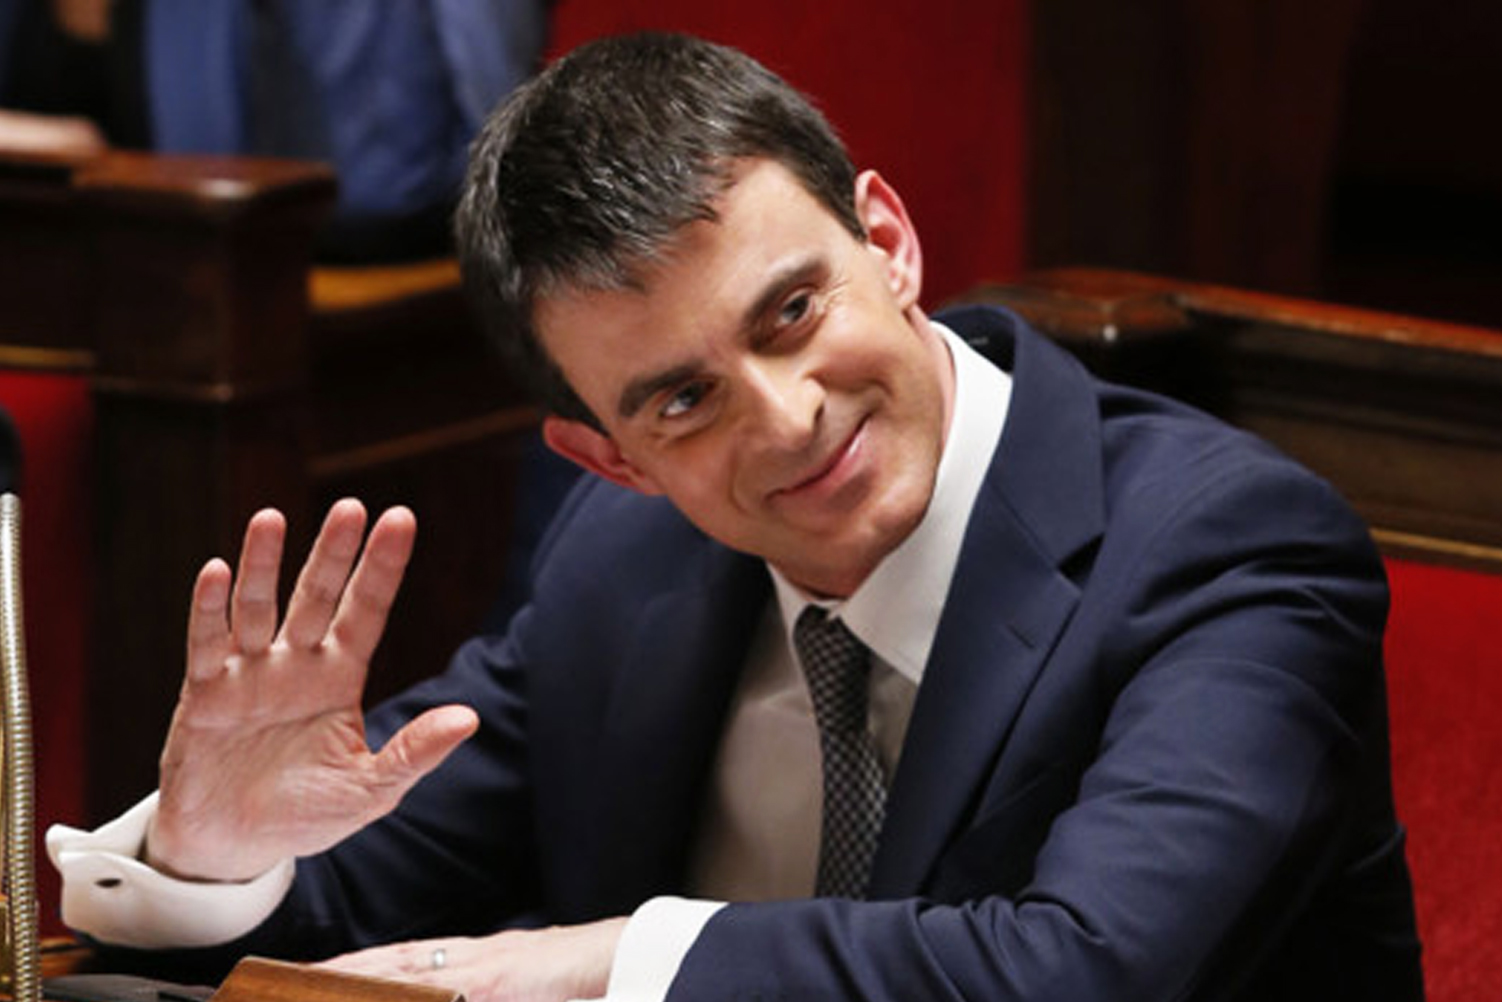 Le d cret valls du 5 12 2016 une vraie menace sur l for Haute juridiction